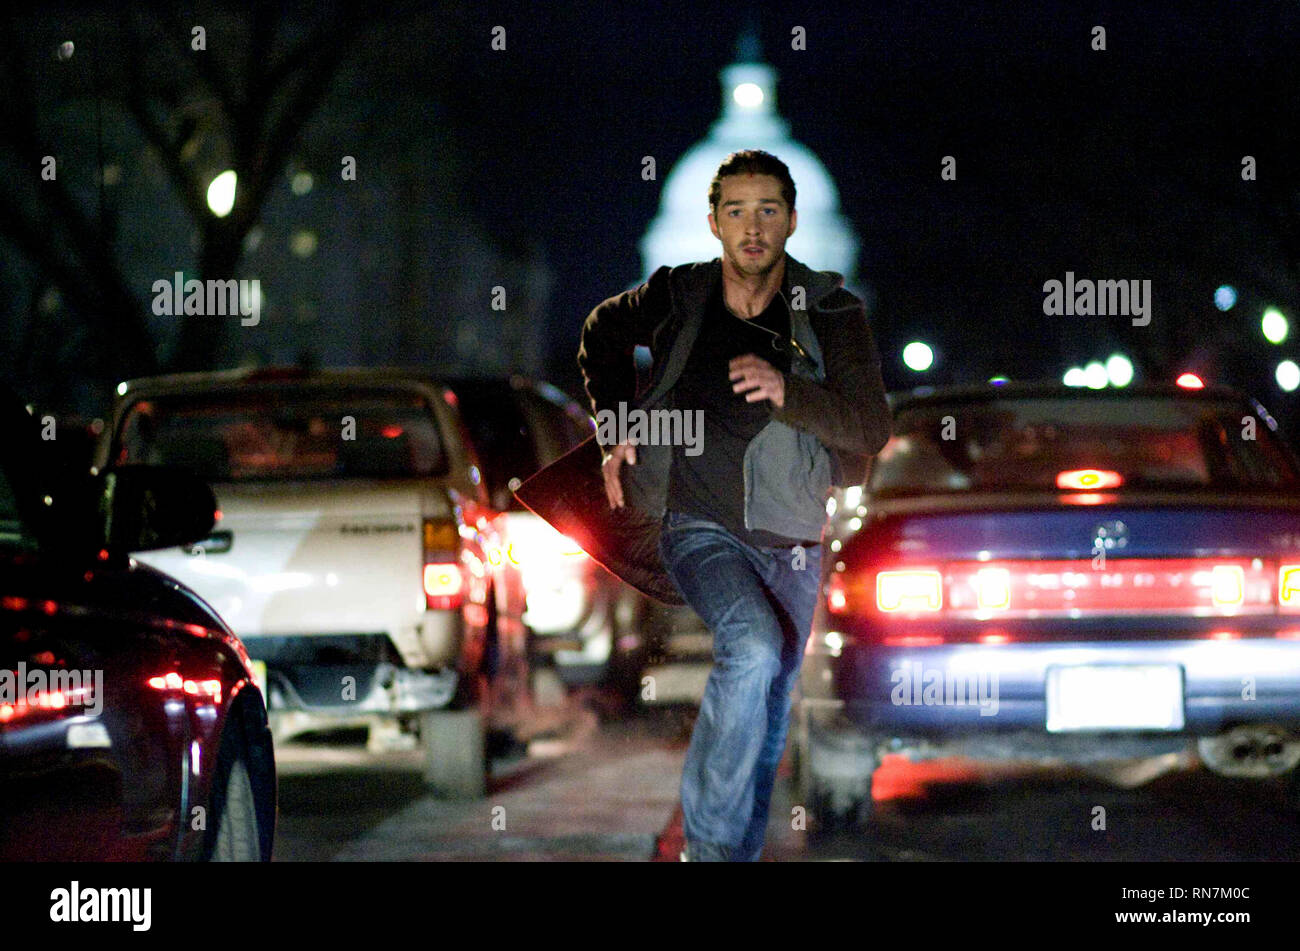 SHIA LABEOUF, EAGLE EYE, 2008 Stock Photo